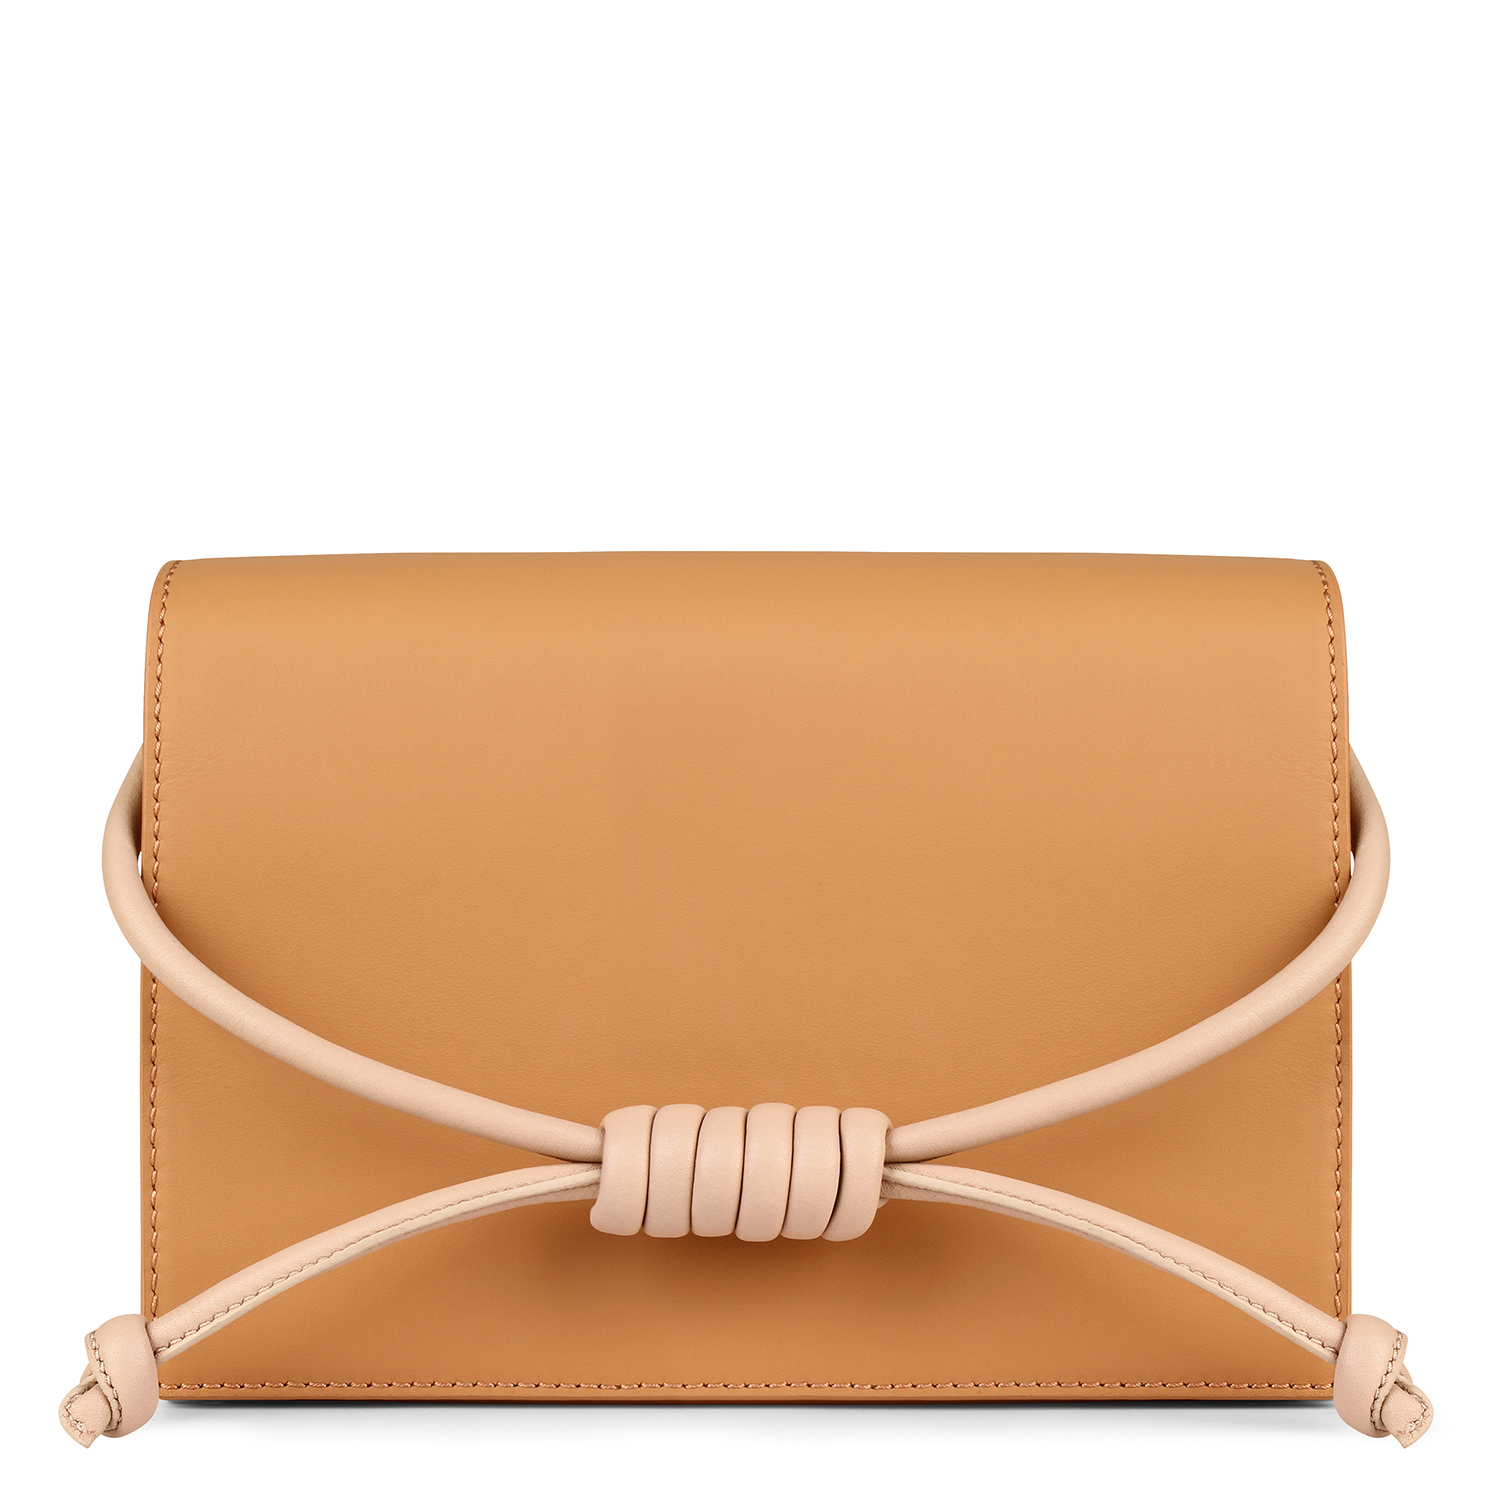 Midi Chelsea Clutch - Caramel by Esin Akan on curated-crowd.com